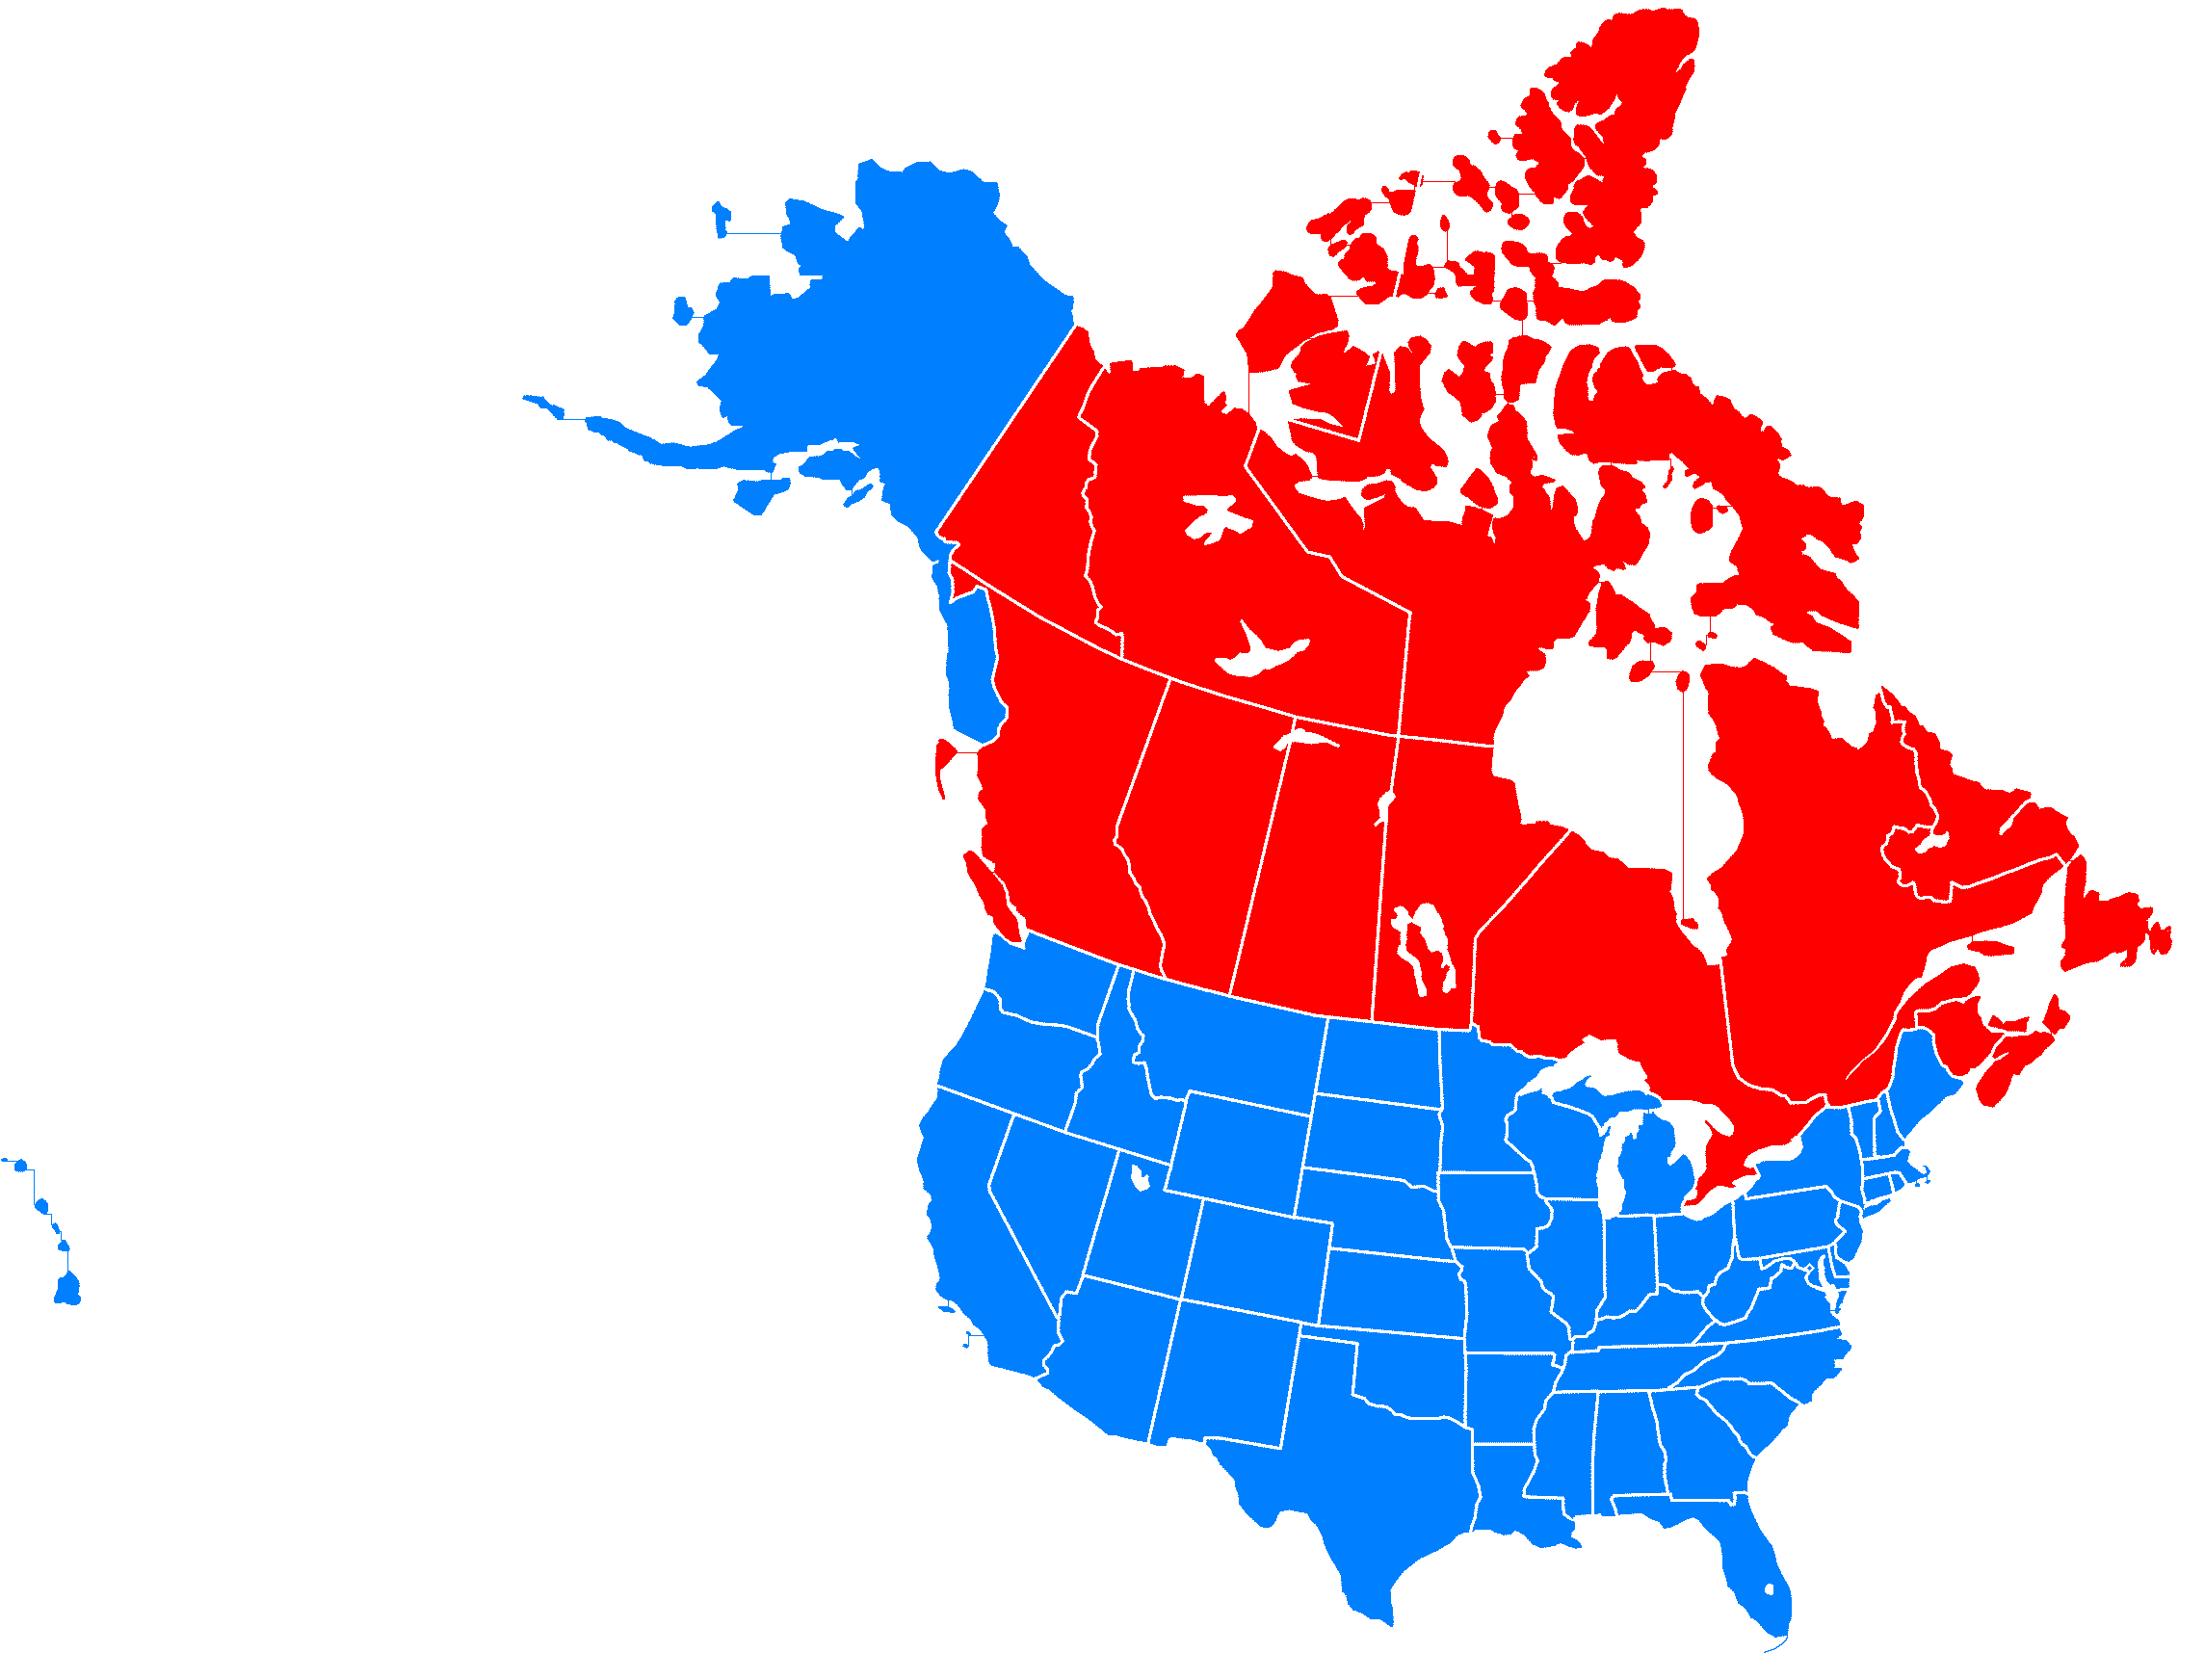 Canada USA Map Icon Images USA And Canada Map USA Canada - Map usa and canada